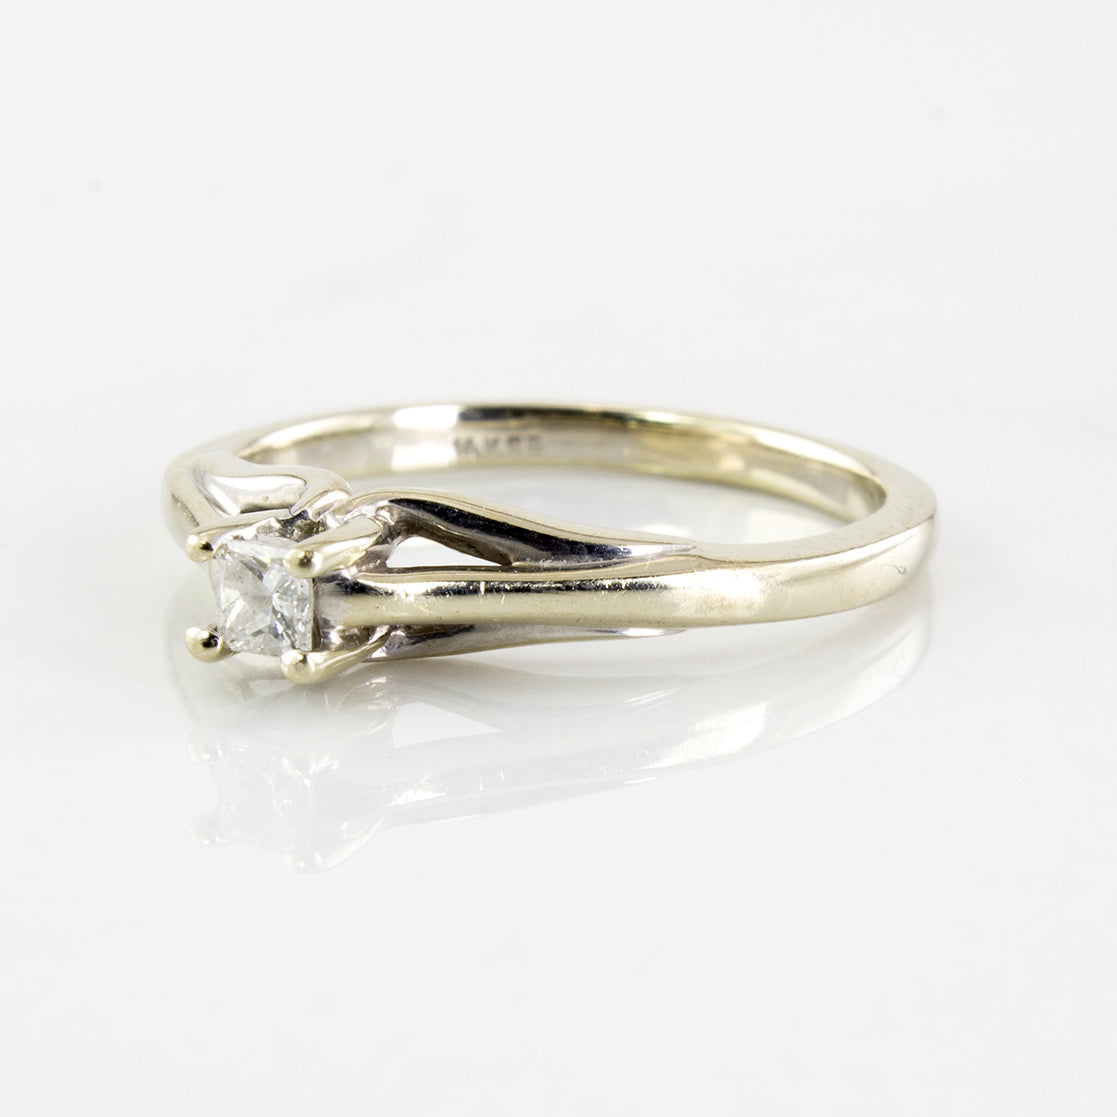 Princess Cut Diamond Solitaire Ring | 0.08 ctw | SZ 4.5 |